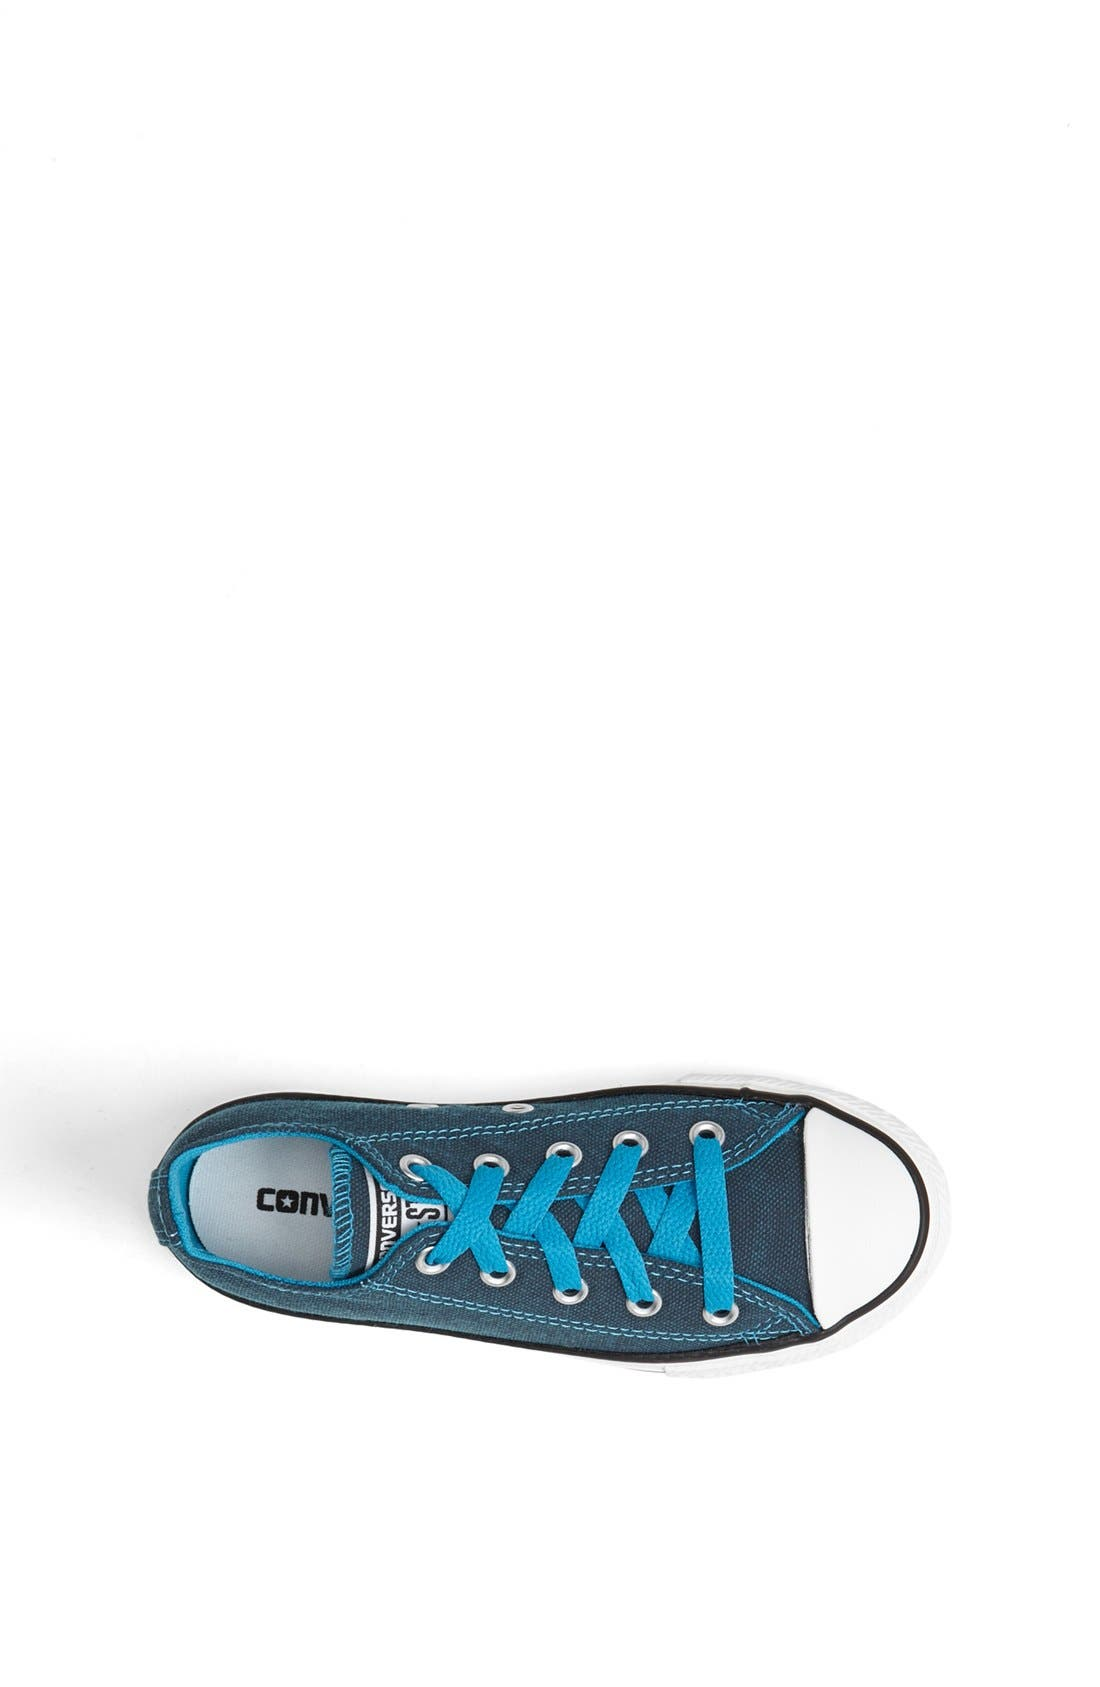 Alternate Image 3  - Converse Chuck Taylor® All Star® Low Top Sneaker (Toddler & Little Kid)